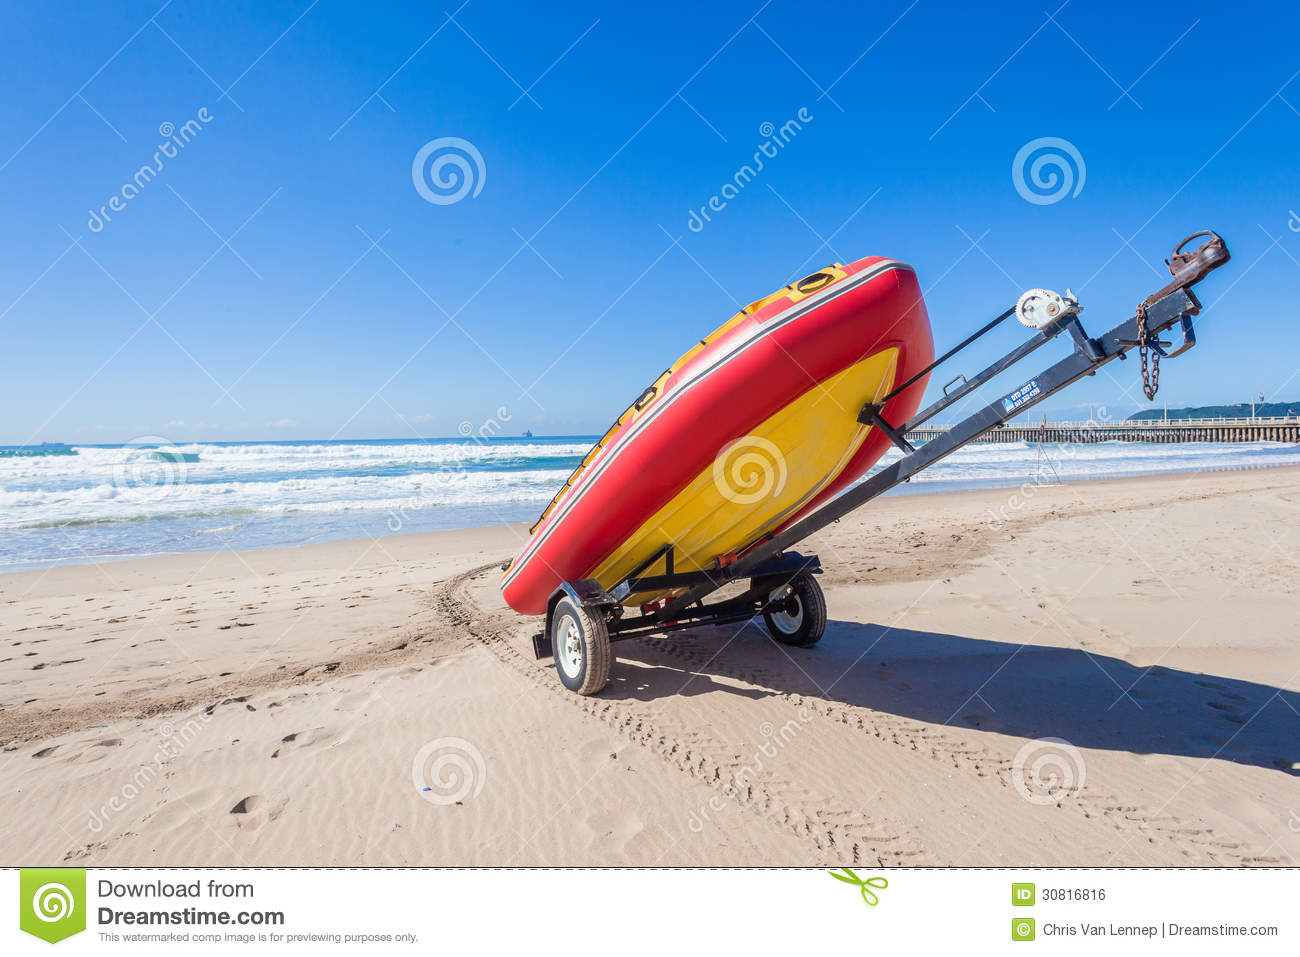 Lifeguard Rescue Inflatable Boat Beach Editorial Photo - Image: 30816816